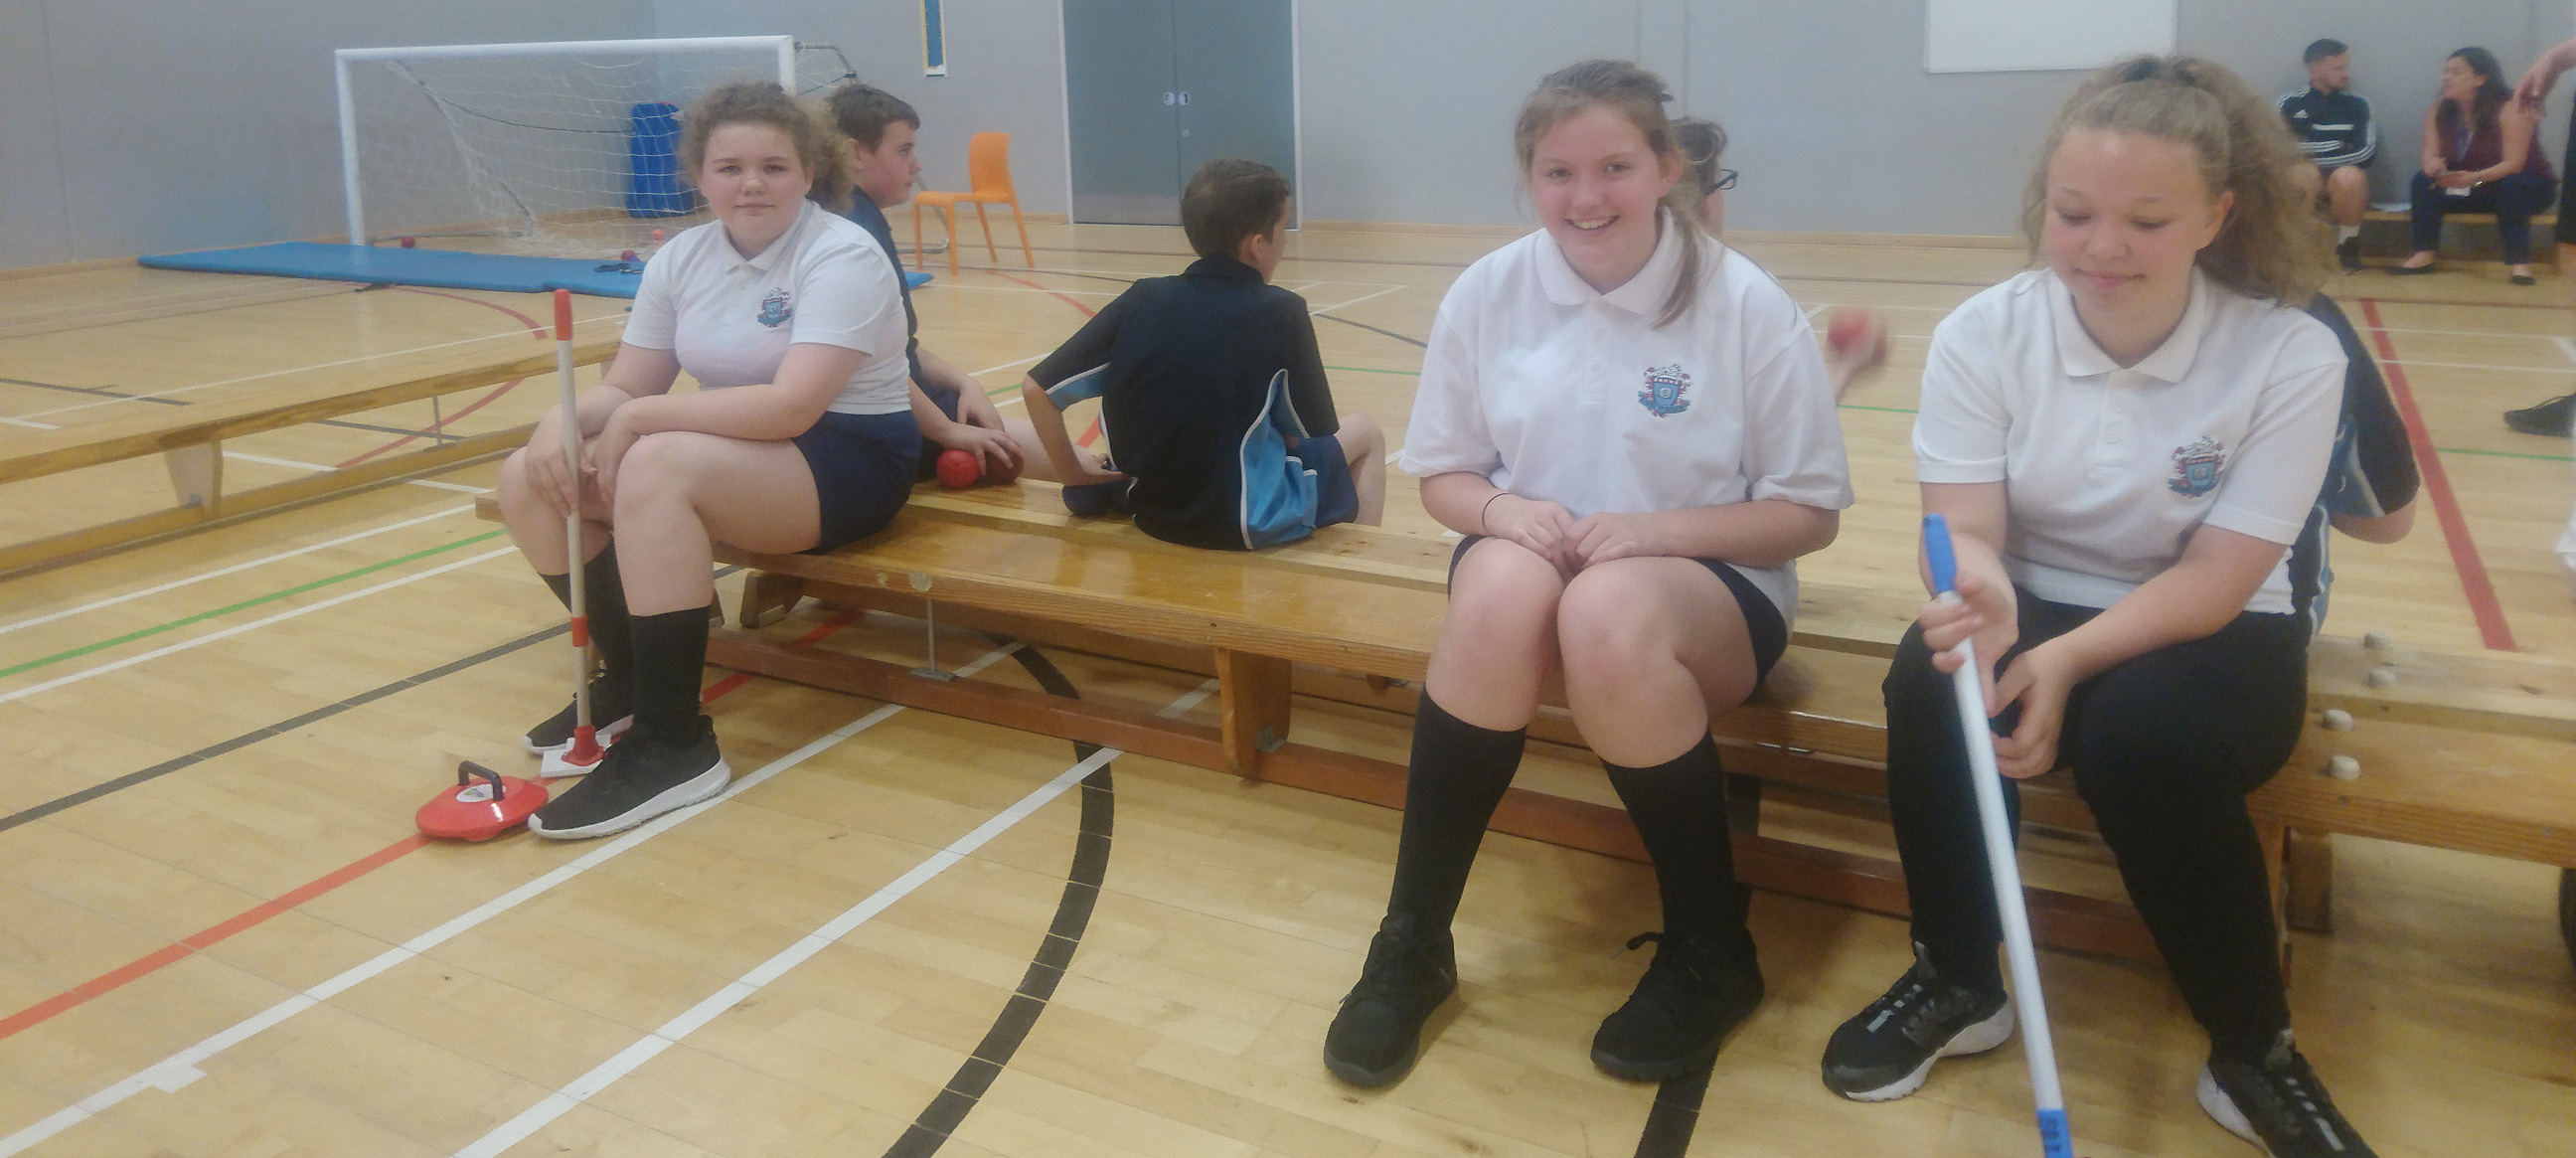 Students get their first experience of 'inclusive sports'